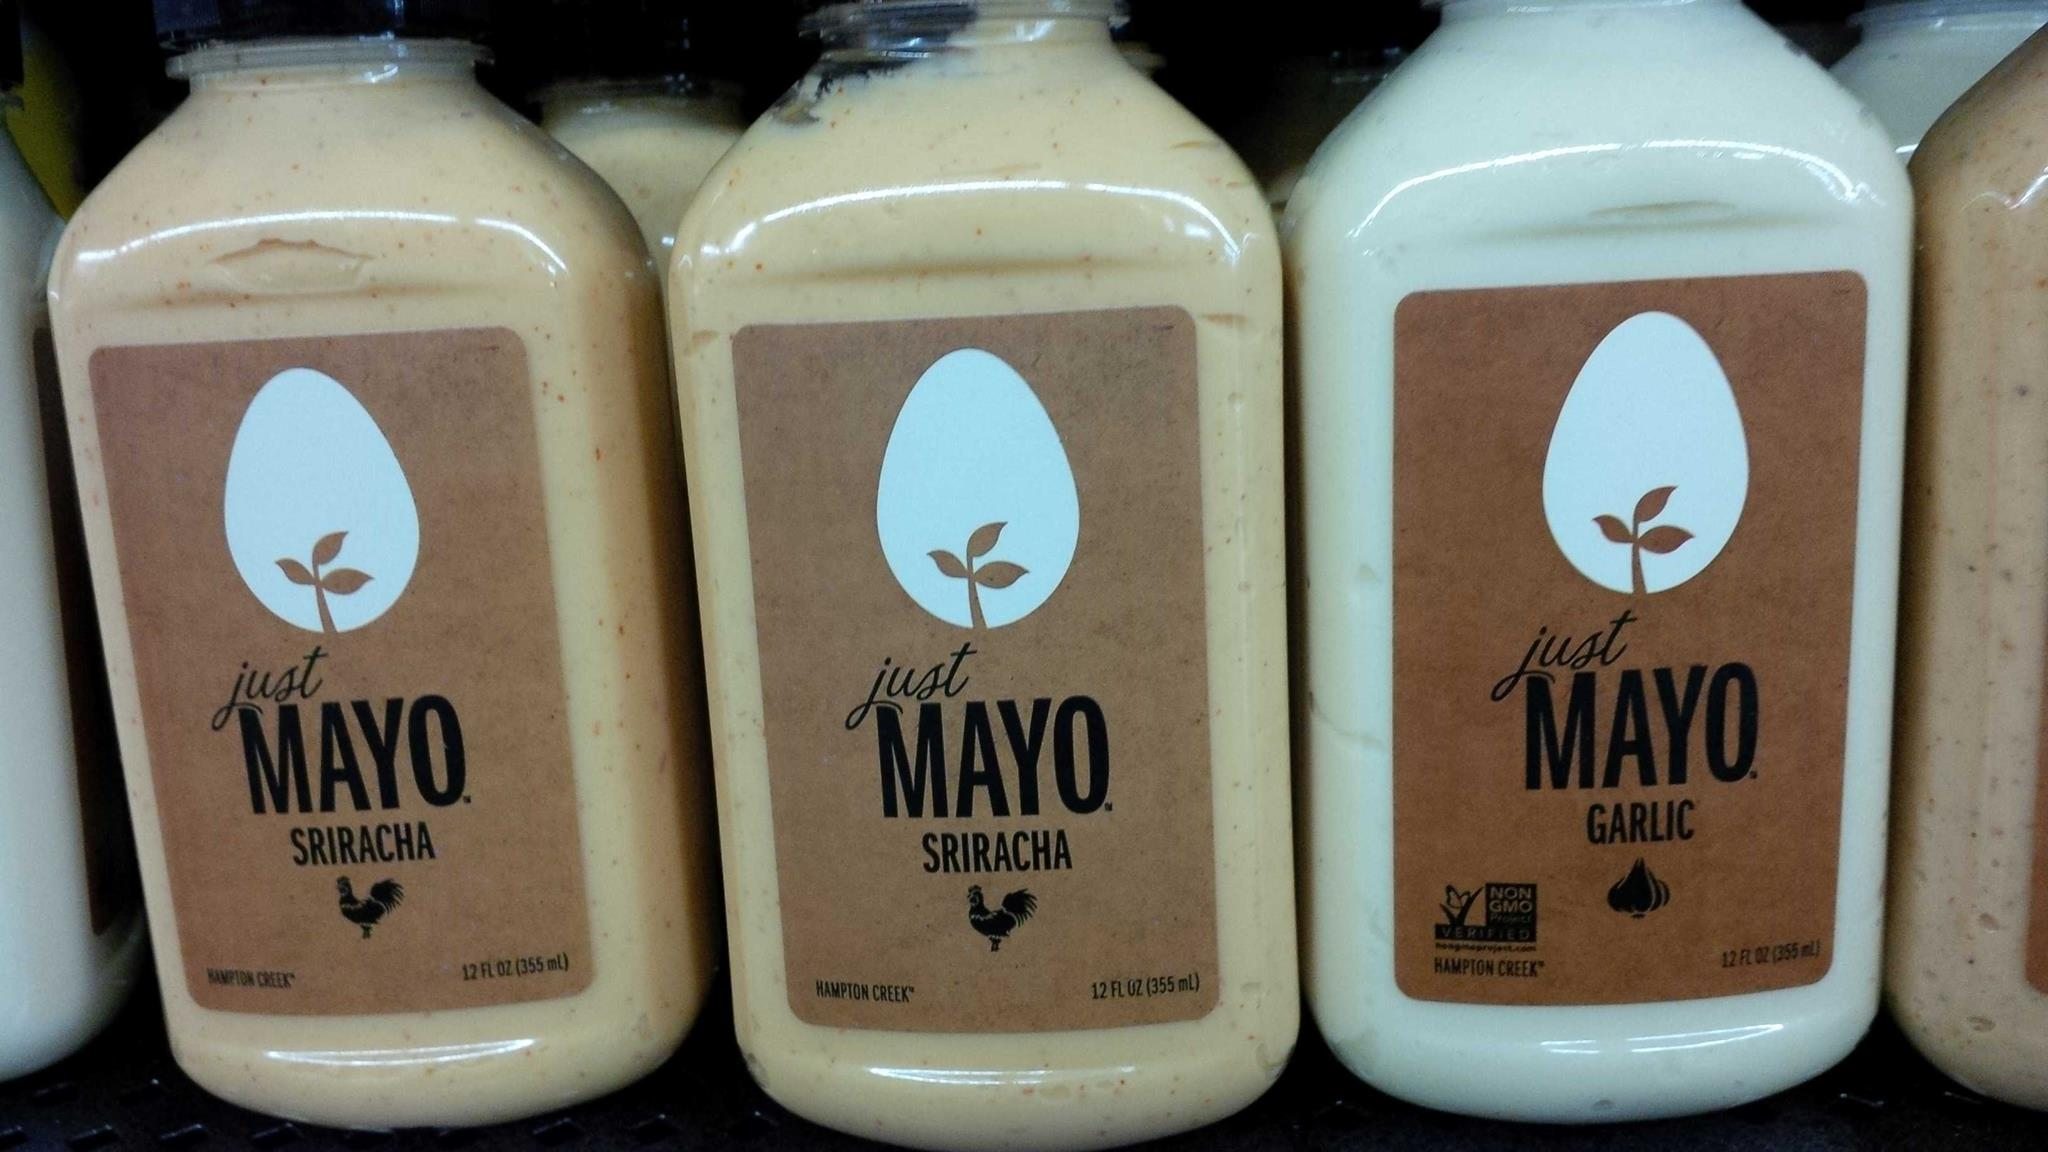 Picture of Just Mayo bottles